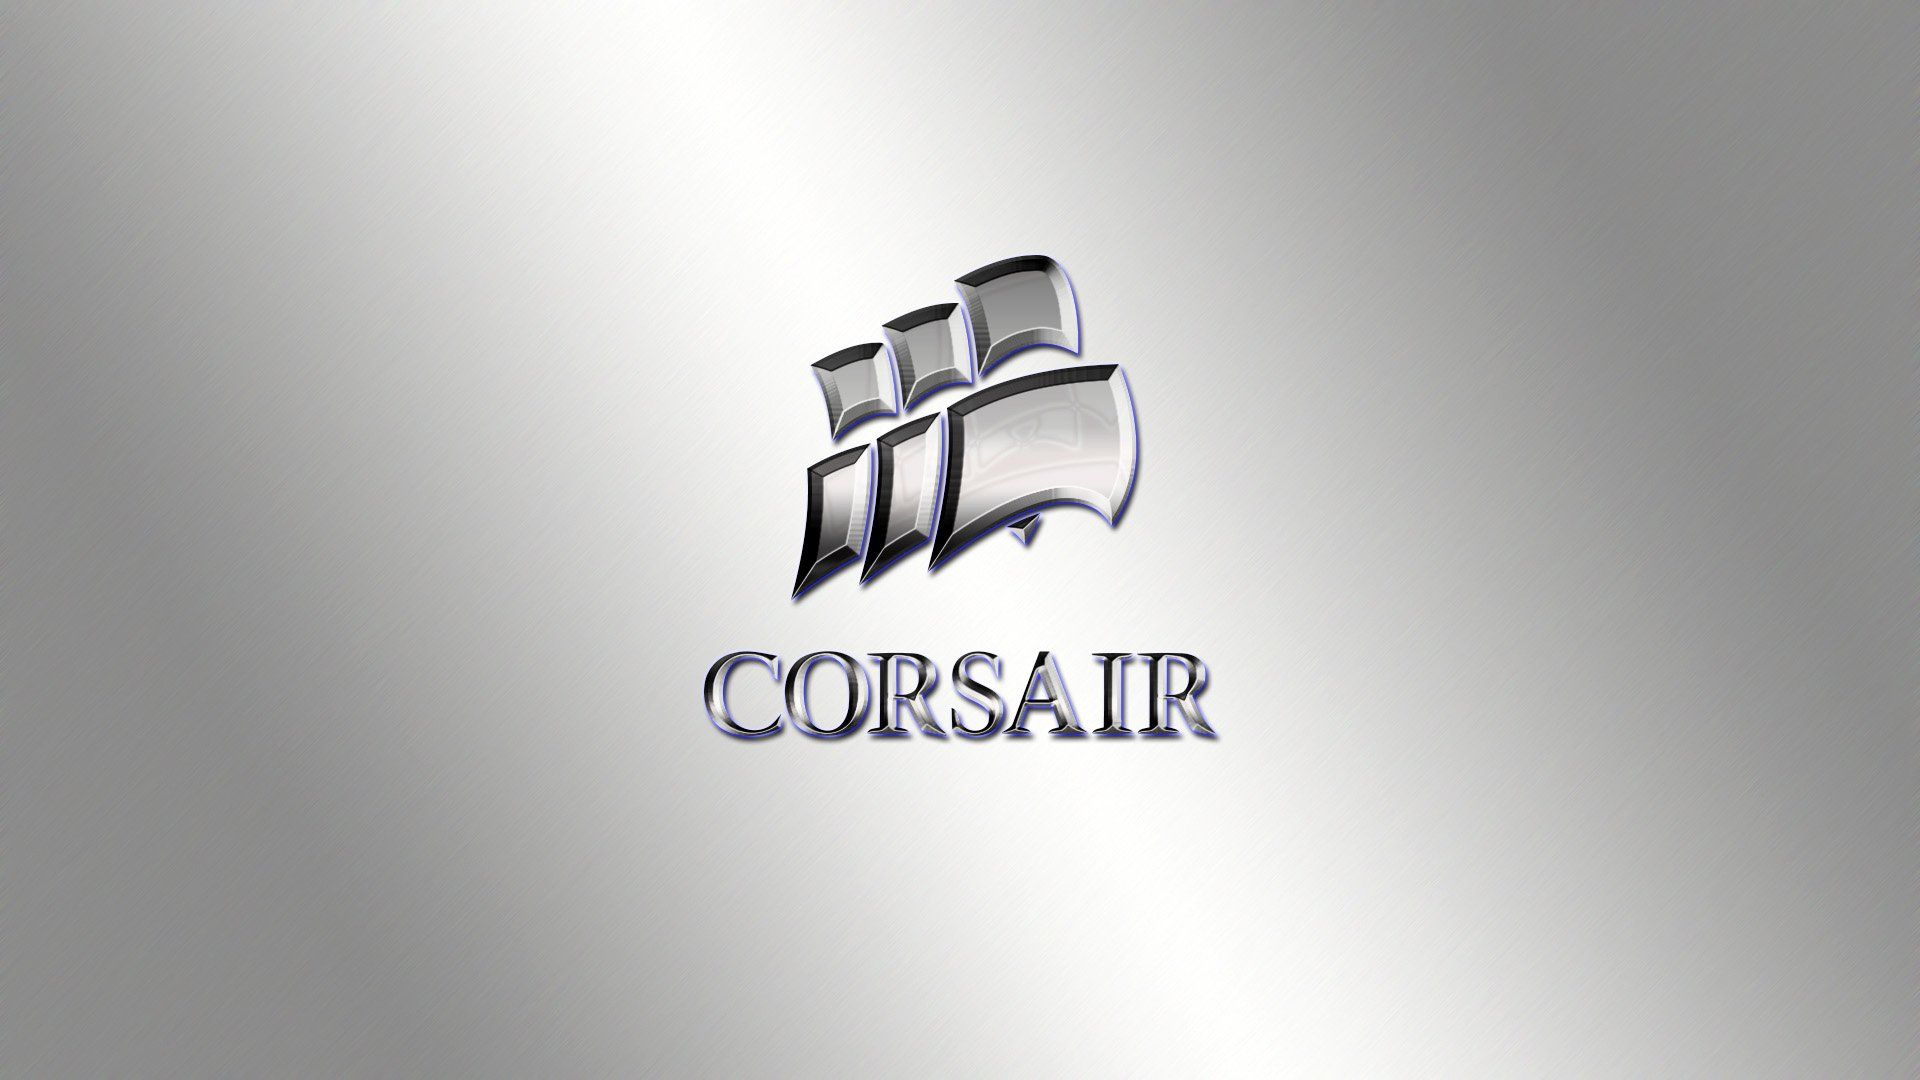 corsair rgb background images hd